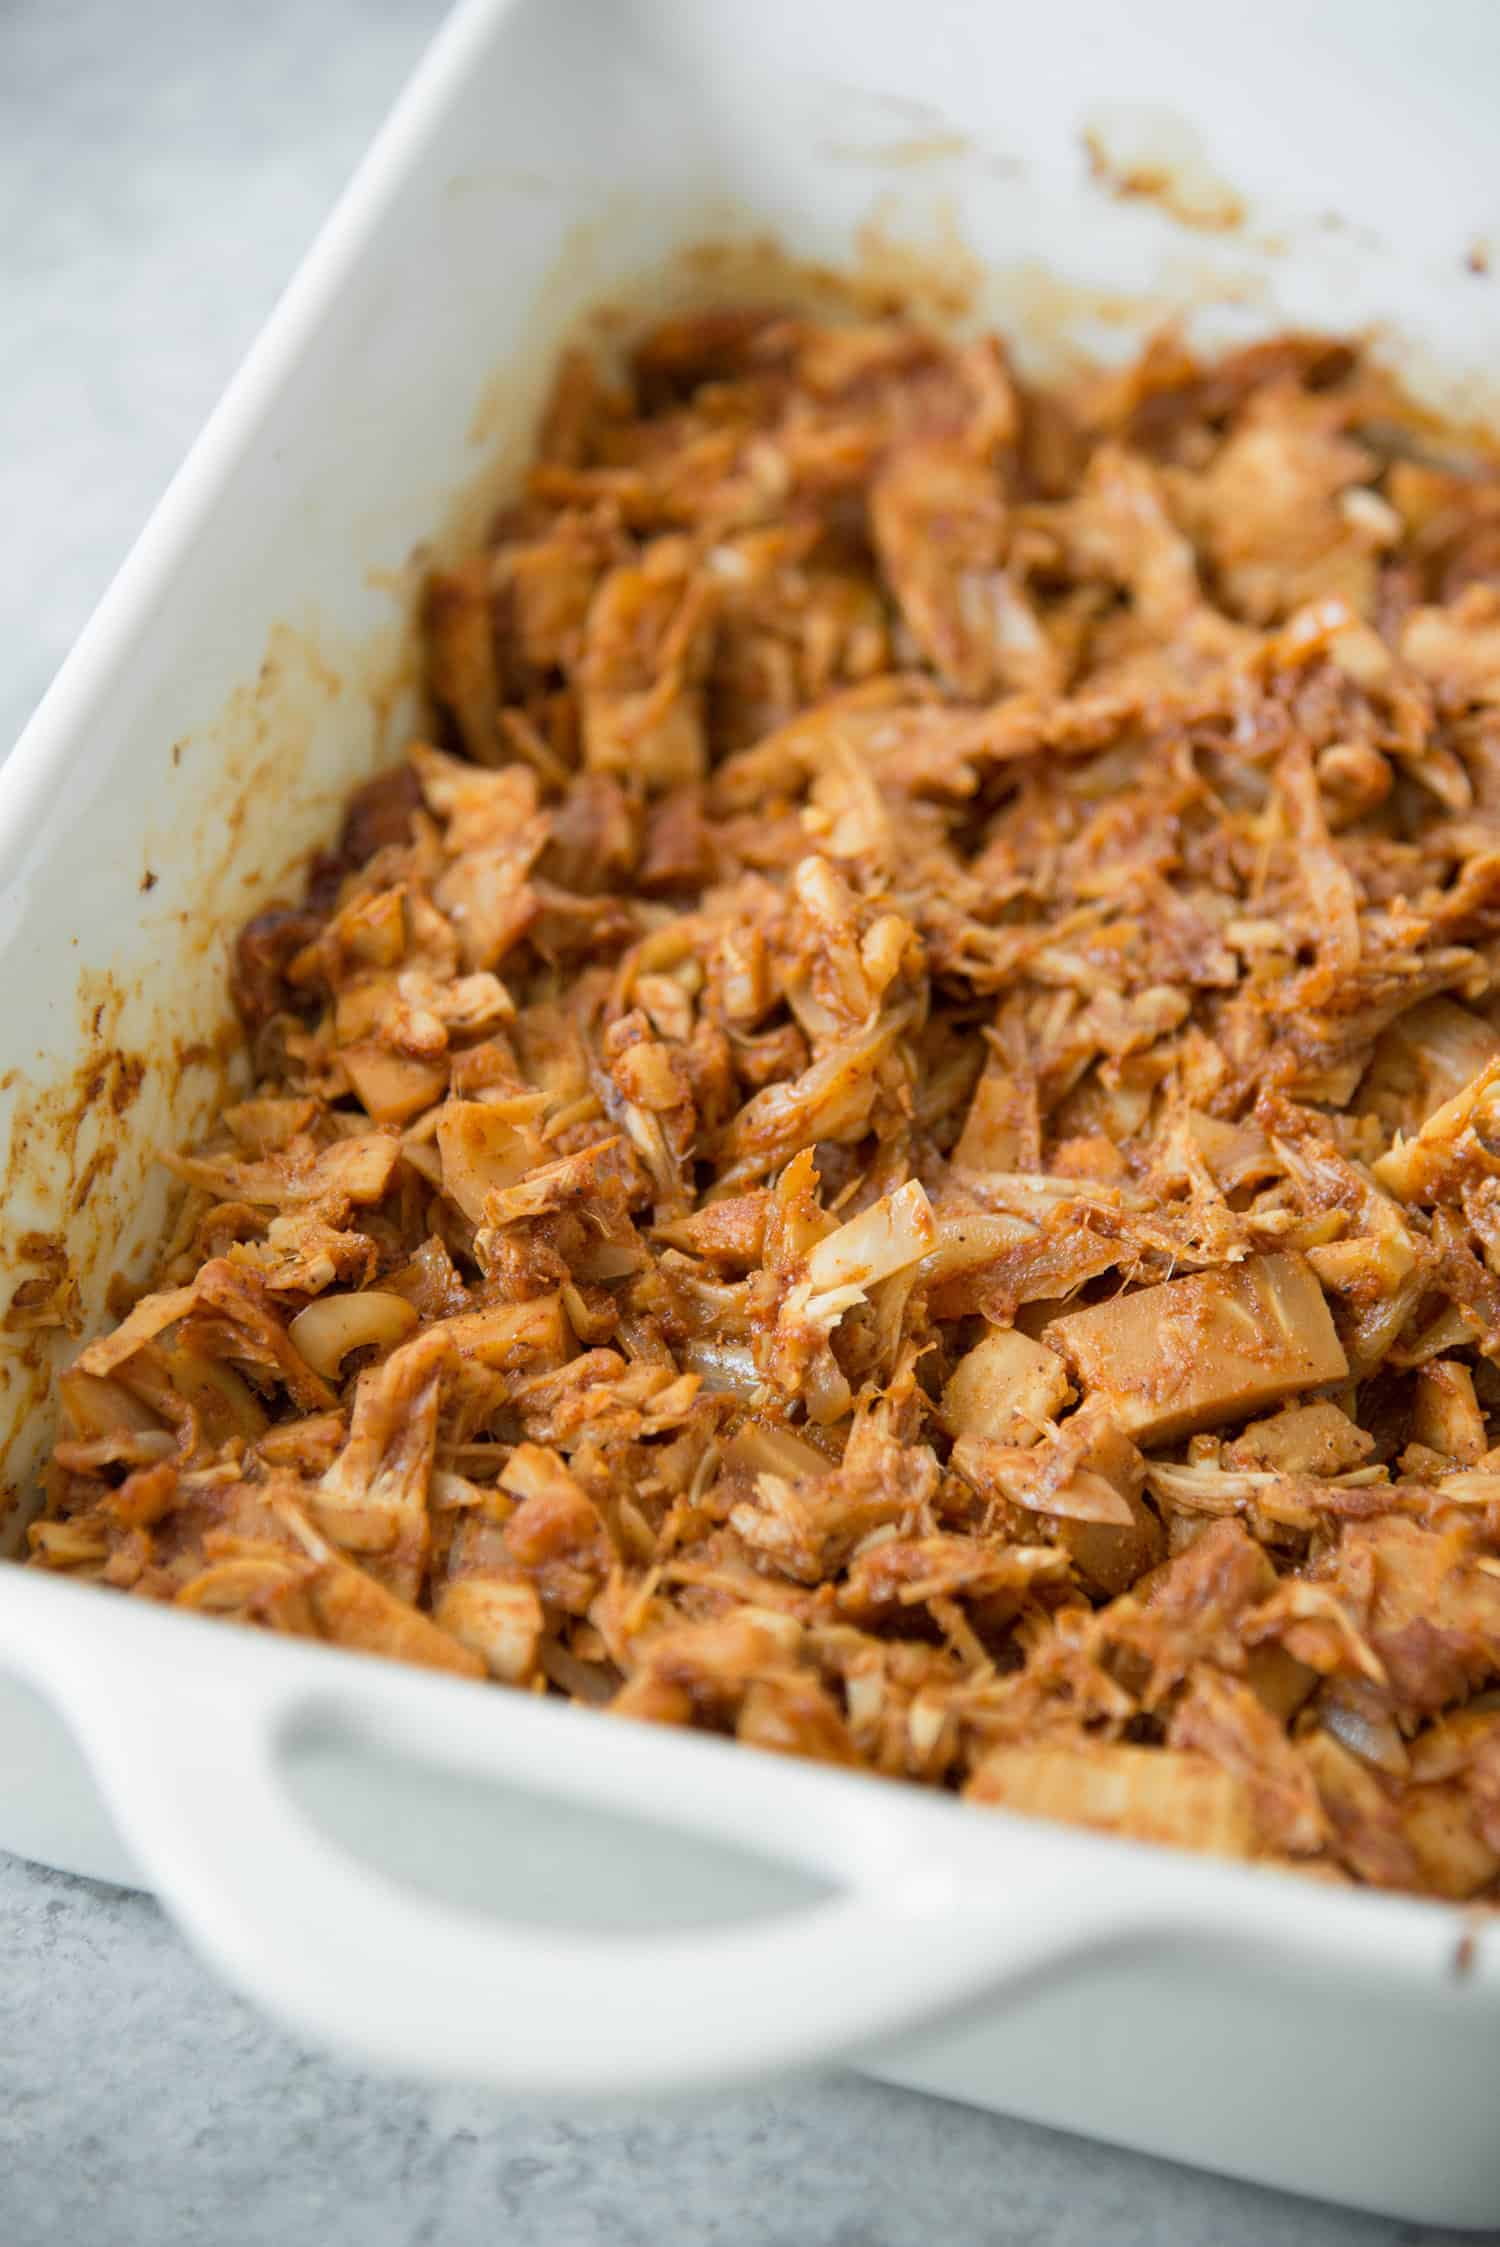 BBQ Jackfruit Sandwiches! If you haven't tried this pulled pork alternative before, you've gotta try this recipe. Shredded Jackfruit with homemade BBQ sauce. Vegan. | www.delishknowledge.com